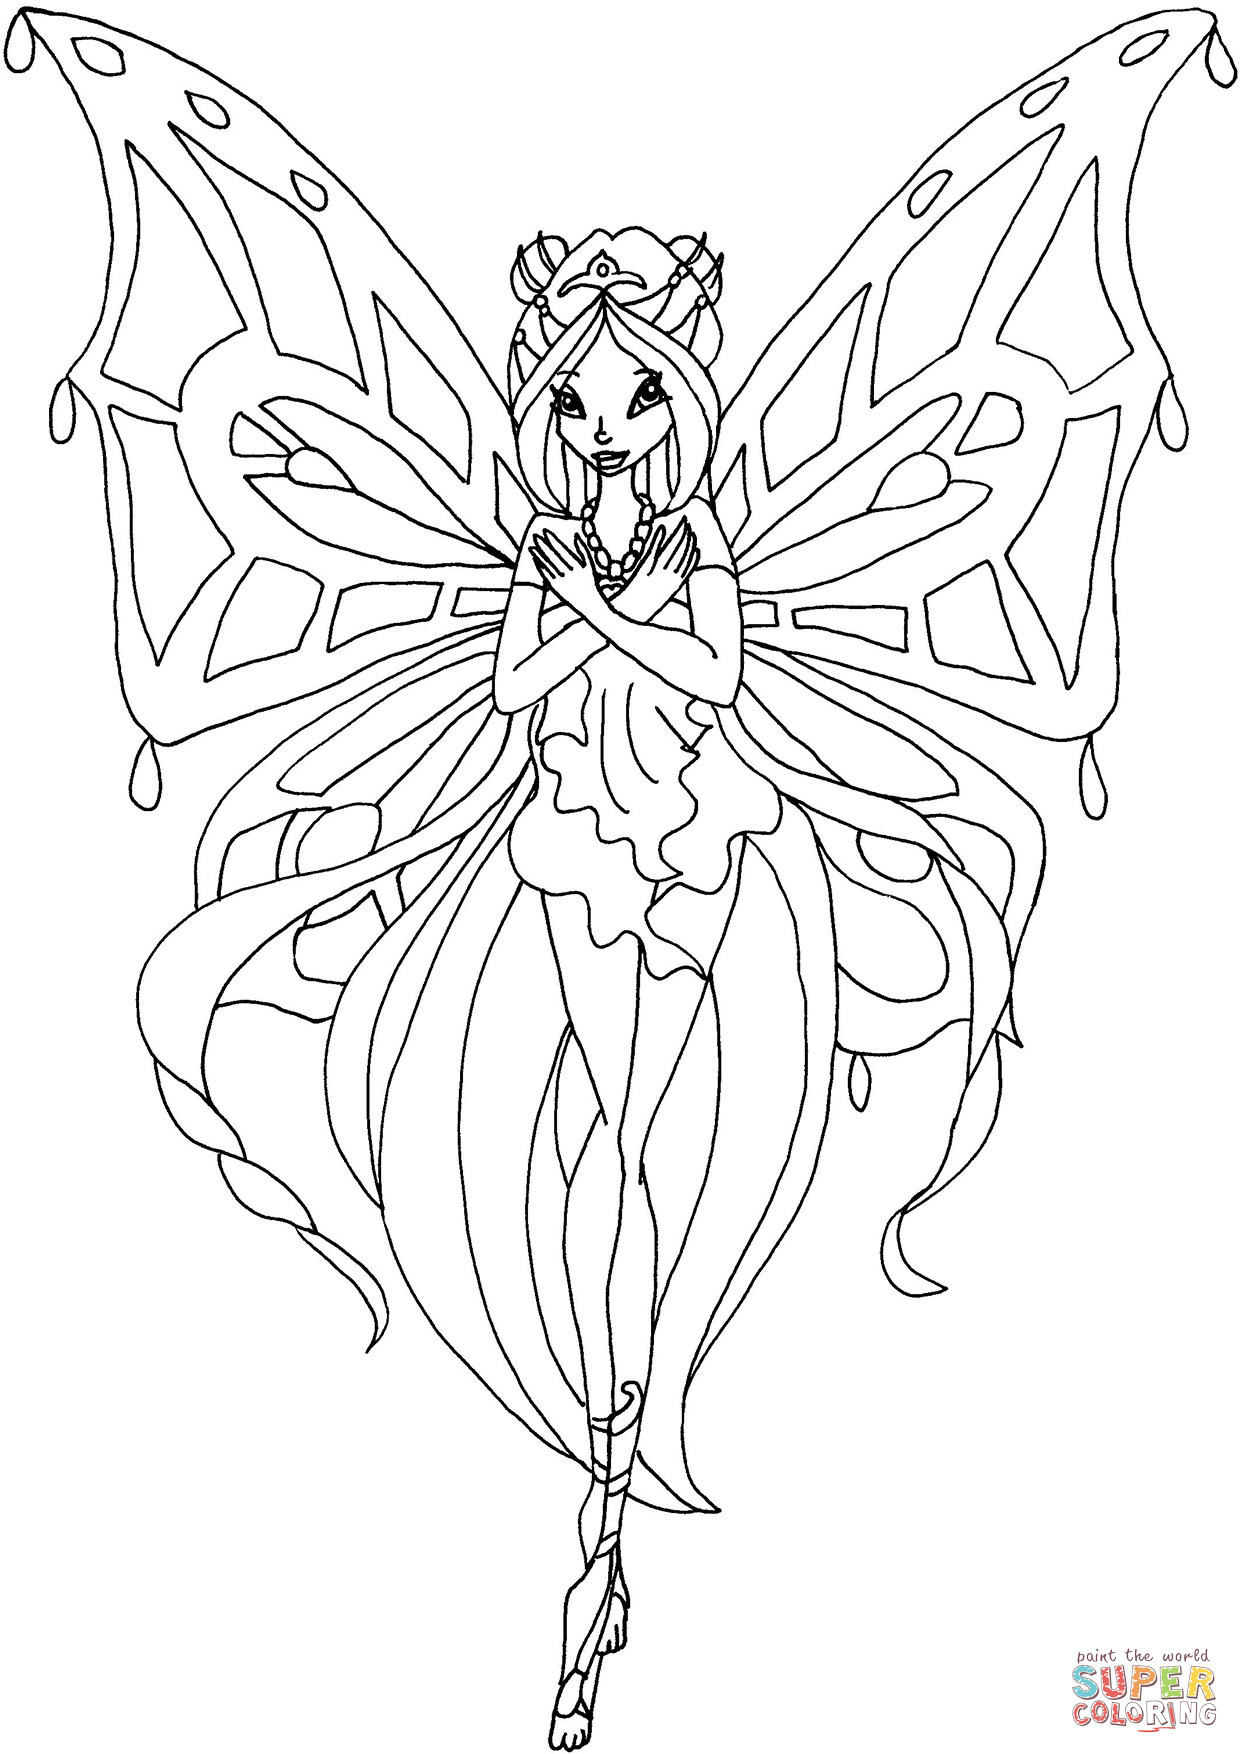 Winx Club Ausmalbilder Neu Winxclub Winx Club Coloring Pages Hd Wallpaper and Frisch Stock